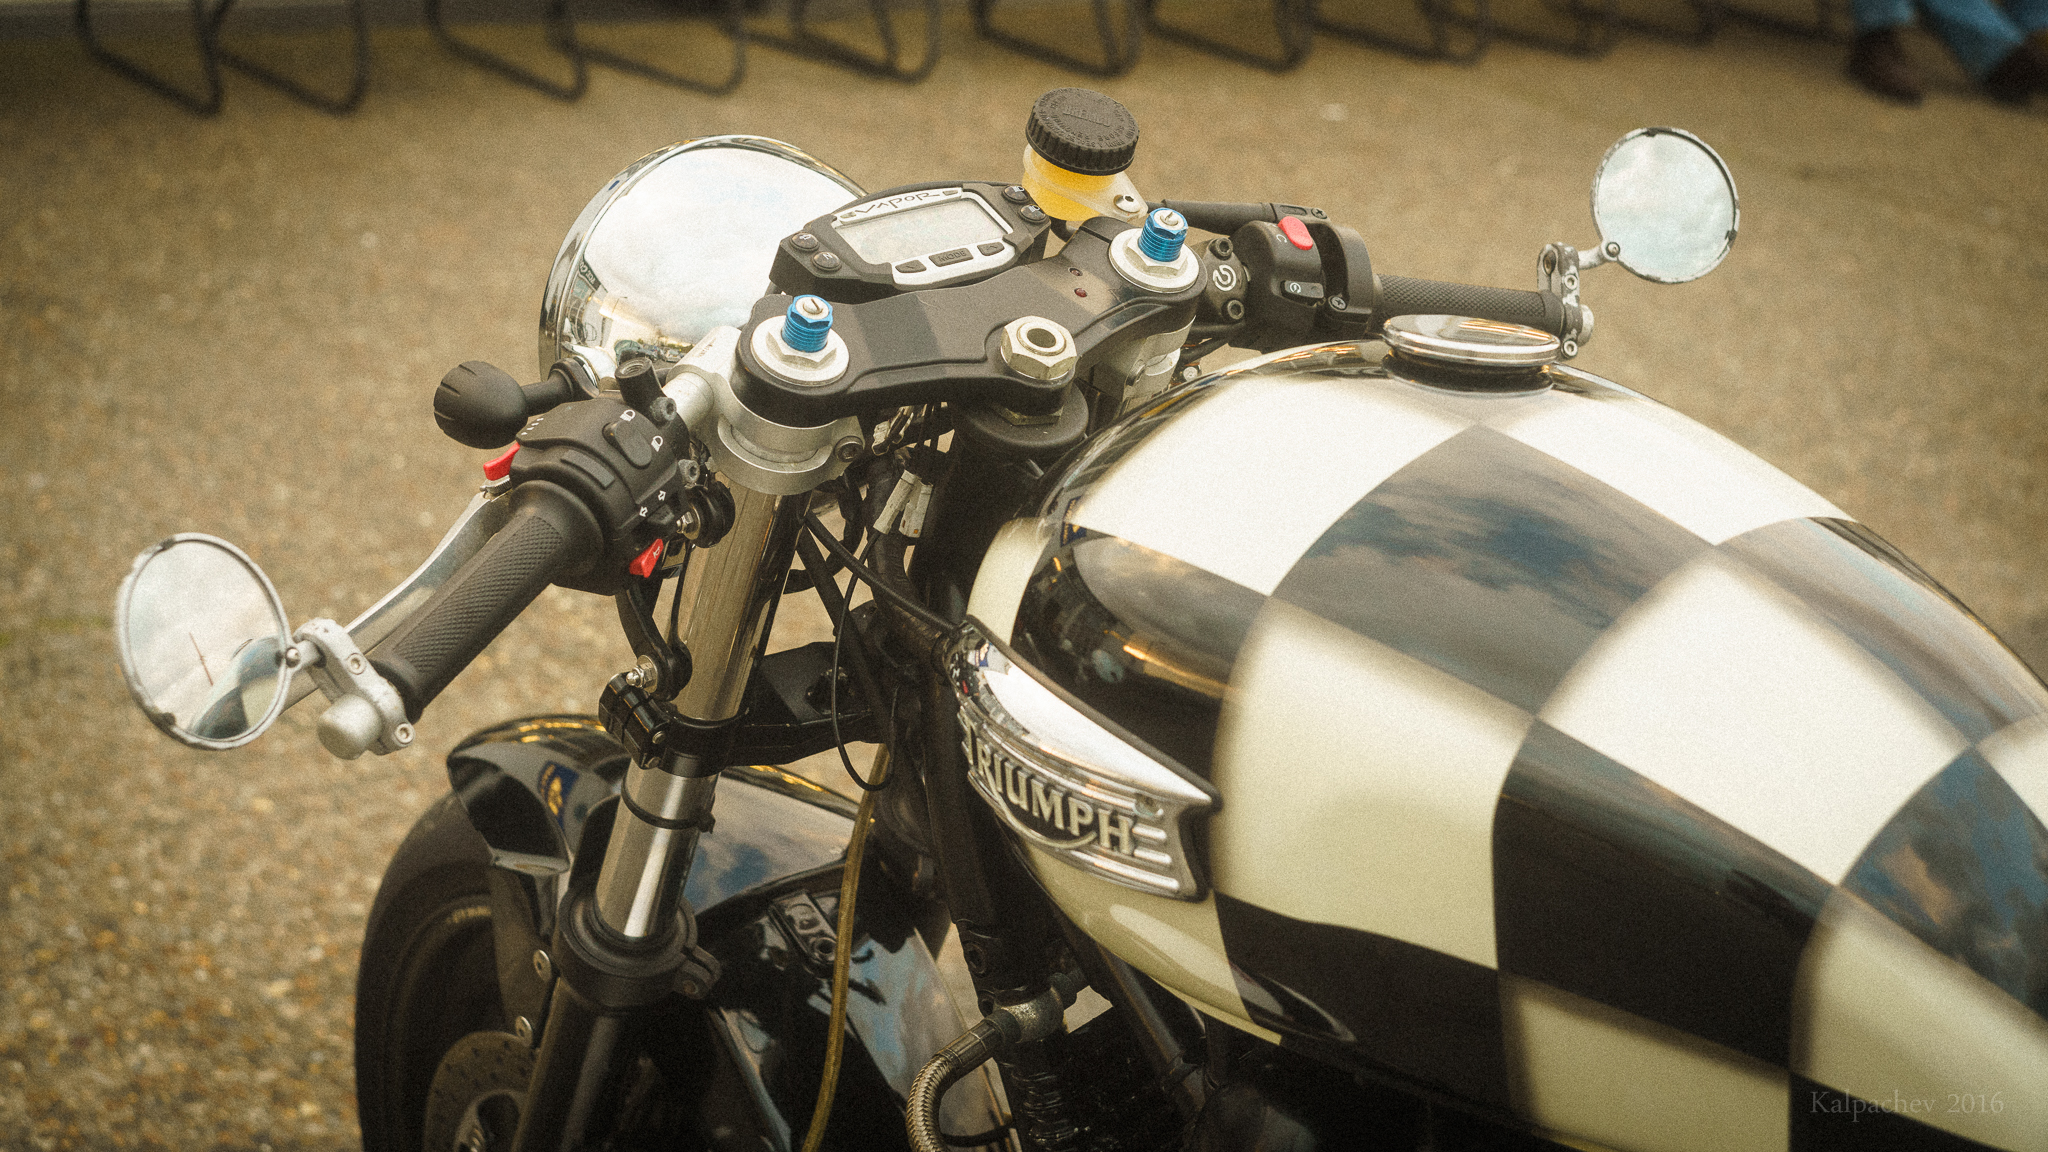 Triumph at the Ace Cafe London